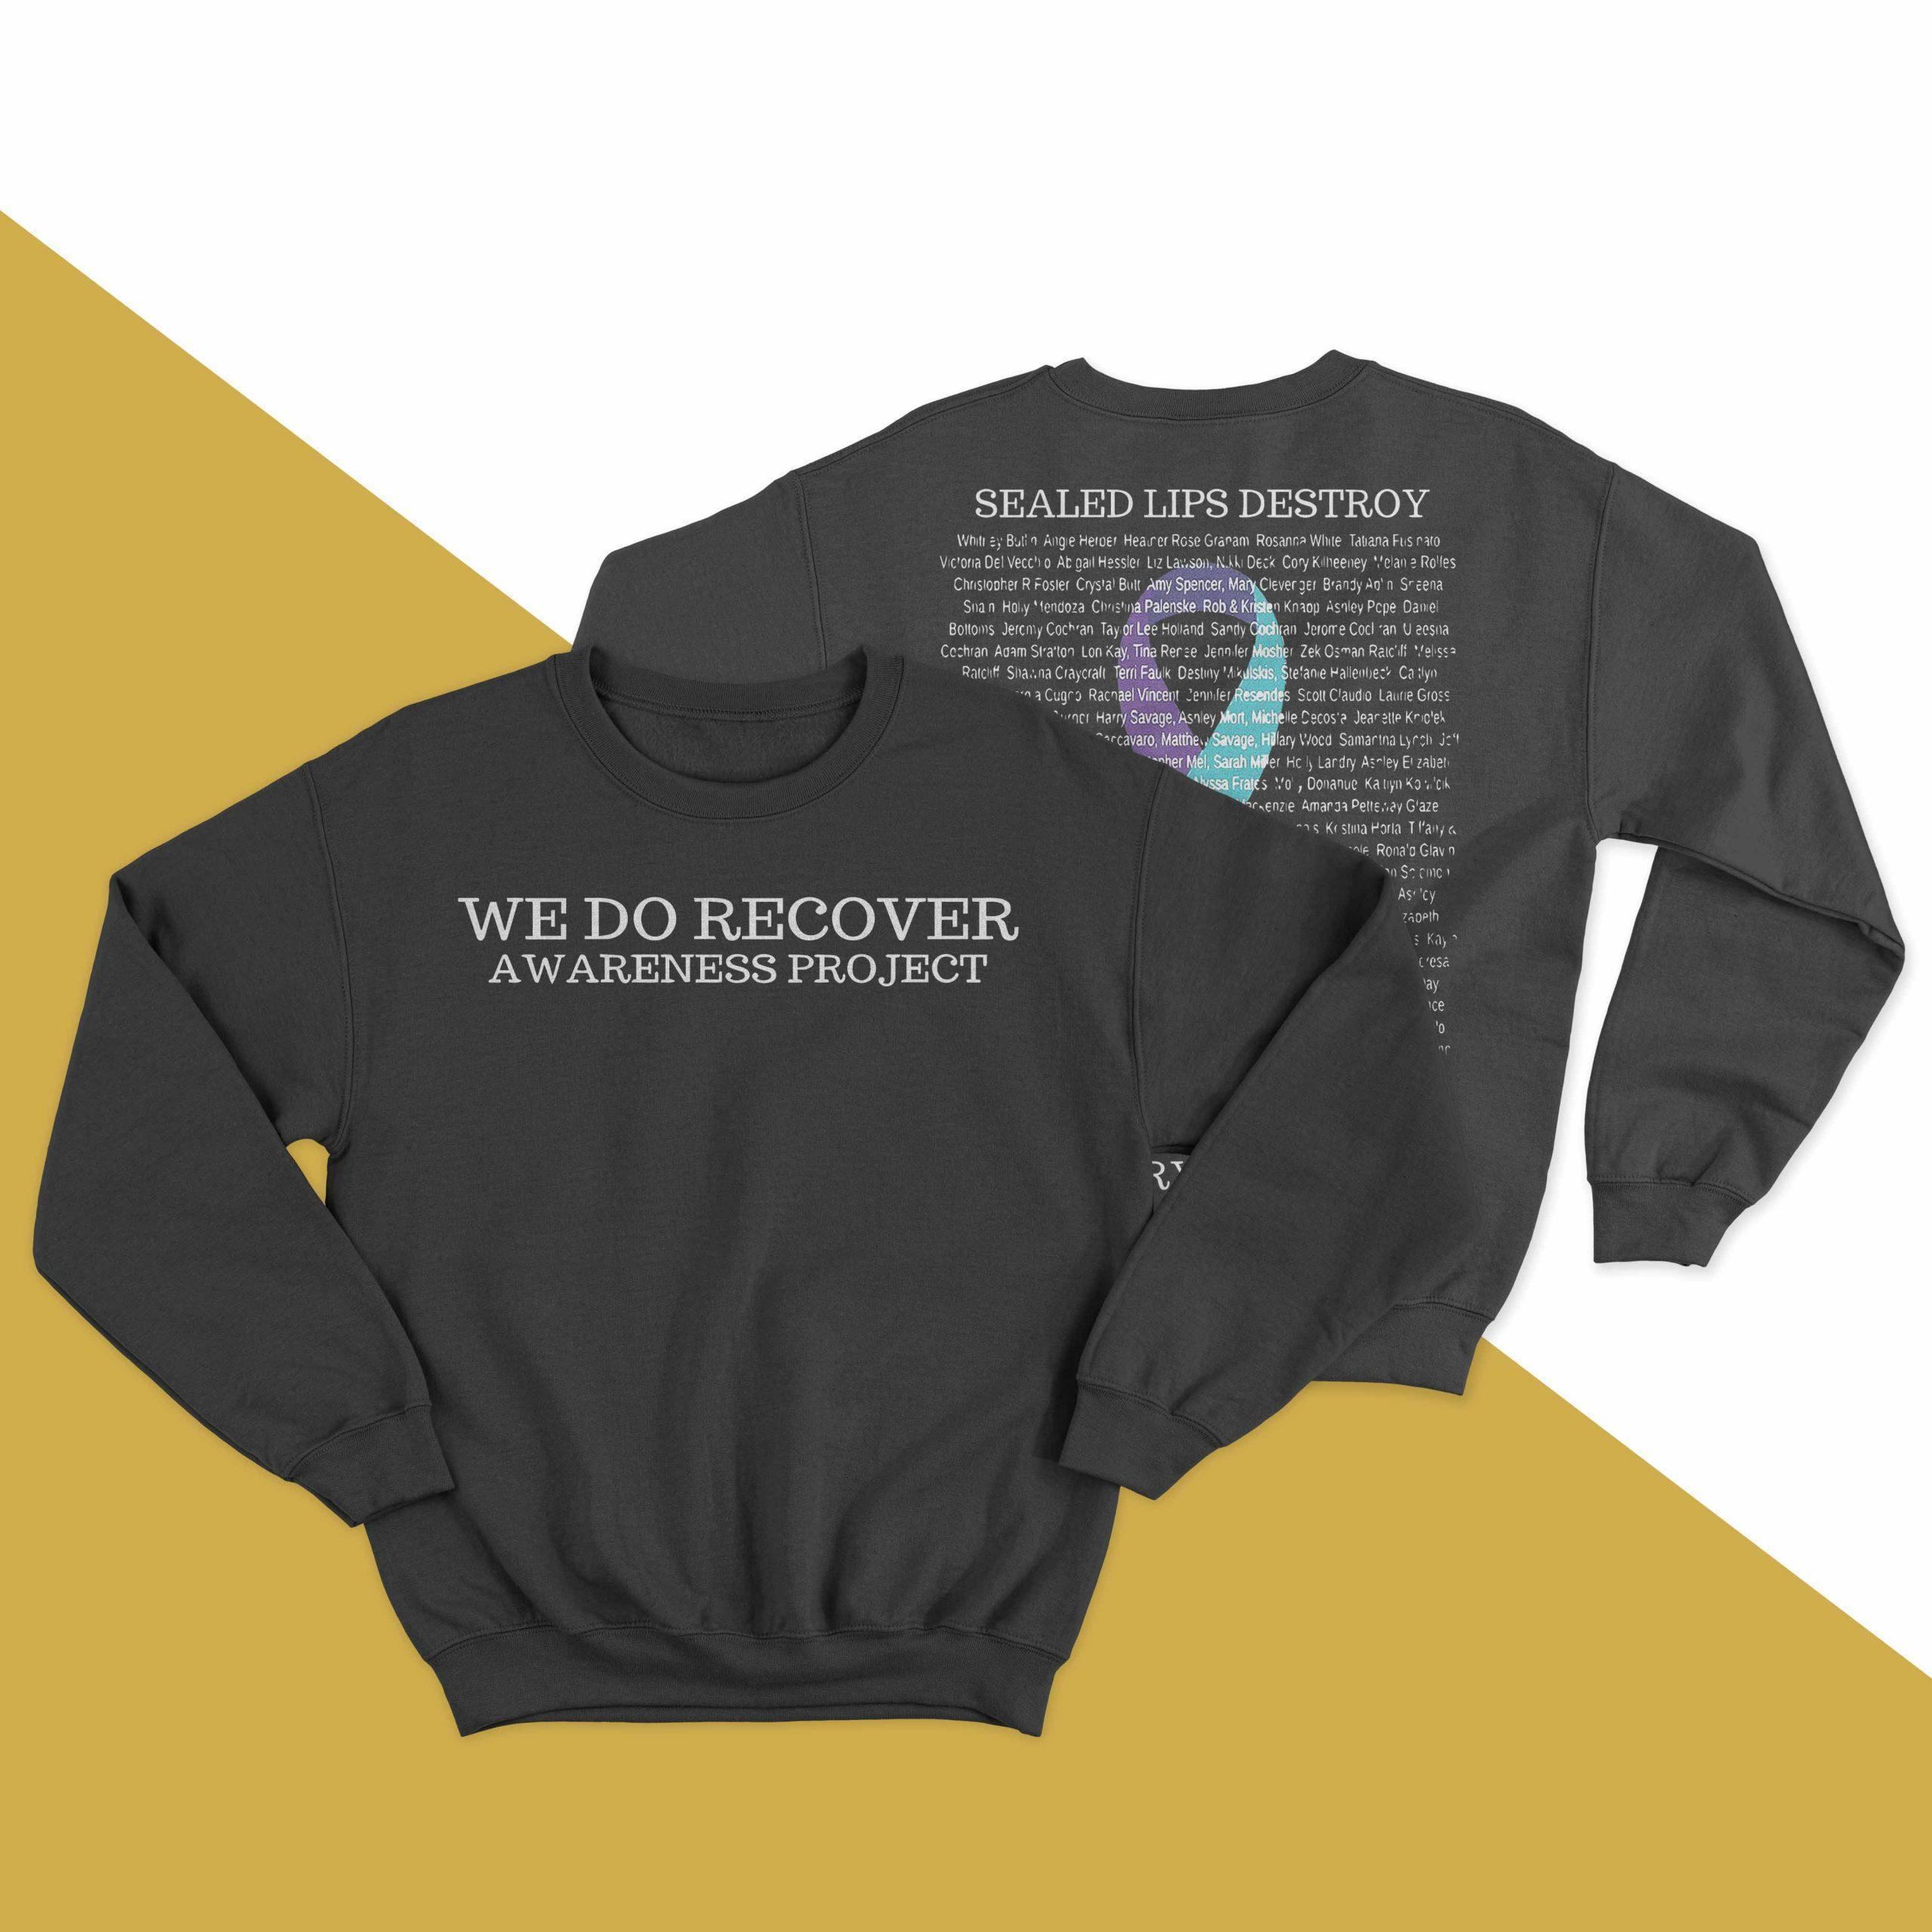 We Do Recover Awareness Project Sealed Lips Destroy Sweater